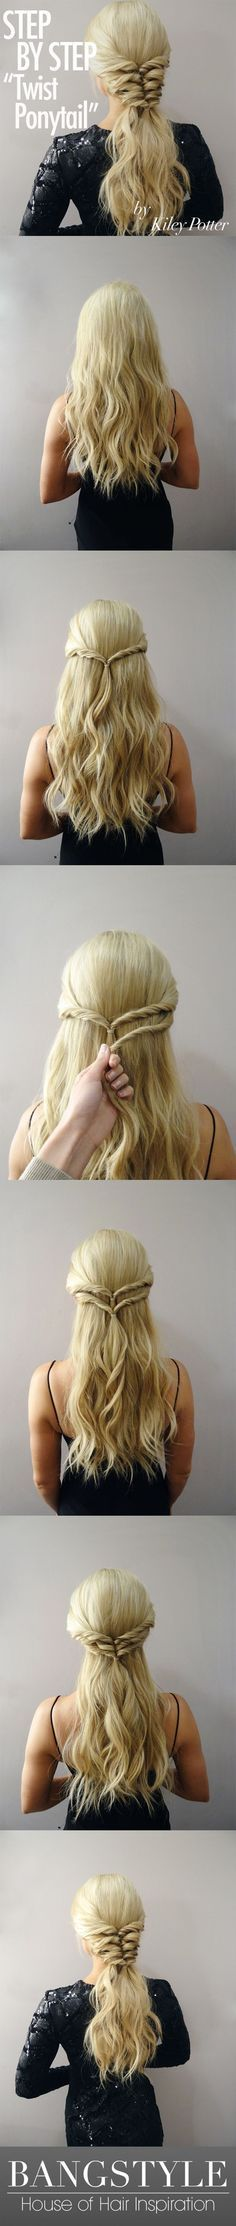 Twist Pony Tail Braid for long thick hair https://www.facebook.com/shorthaircutstyles/posts/1720136374943469